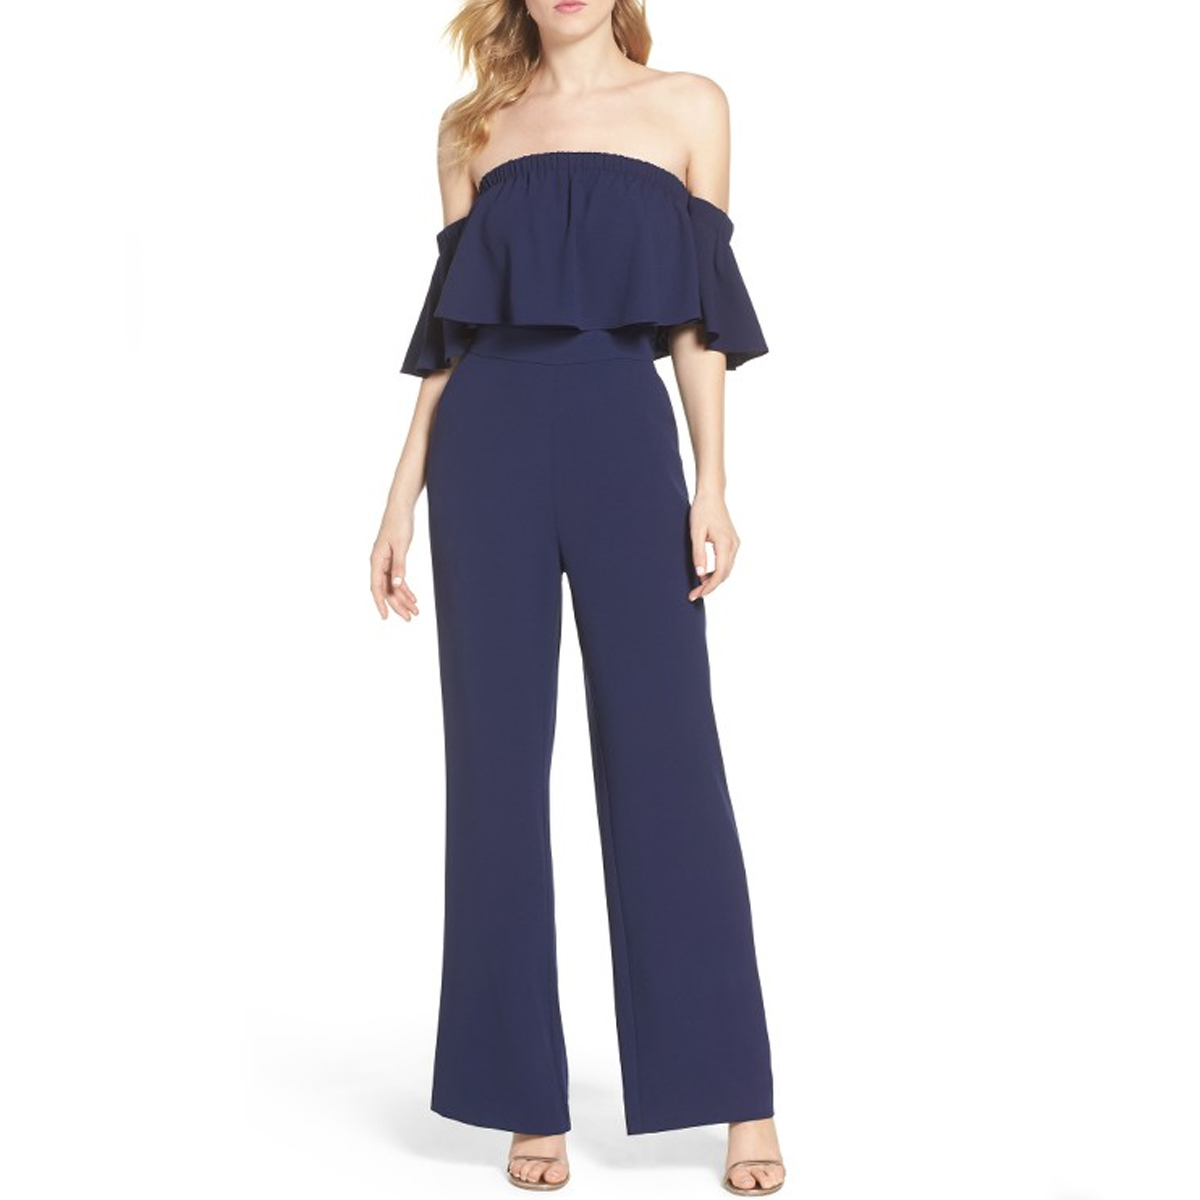 Something Blue Nordstrom Jumpsuit